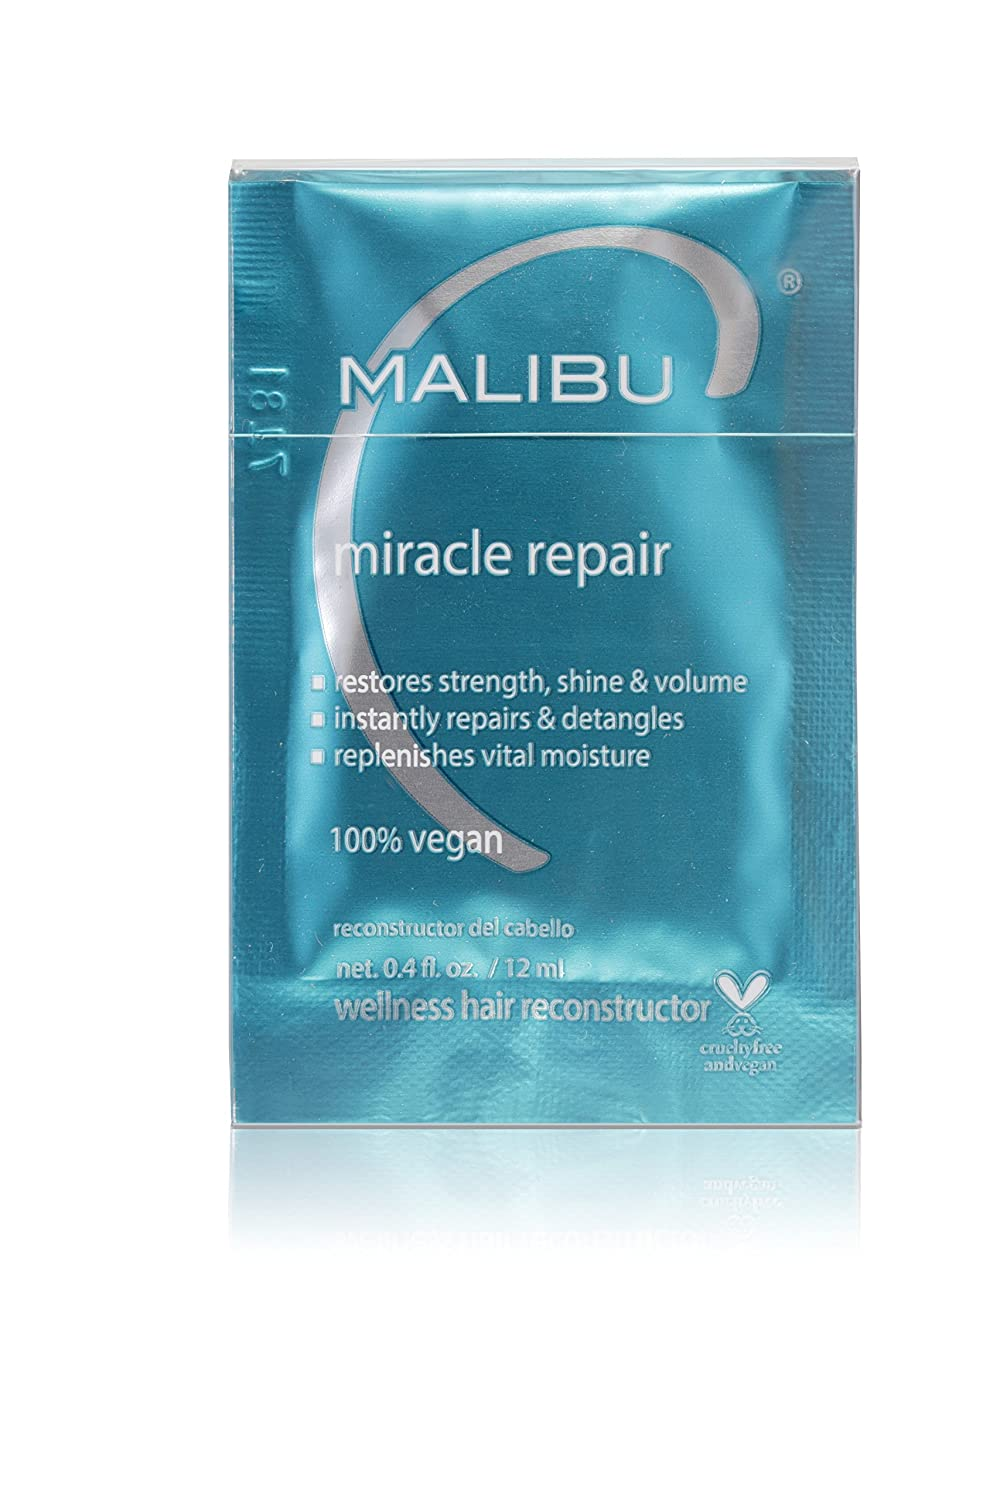 Malibu C Miracle Repair Wellness Hair Reconstructor, 12 Count